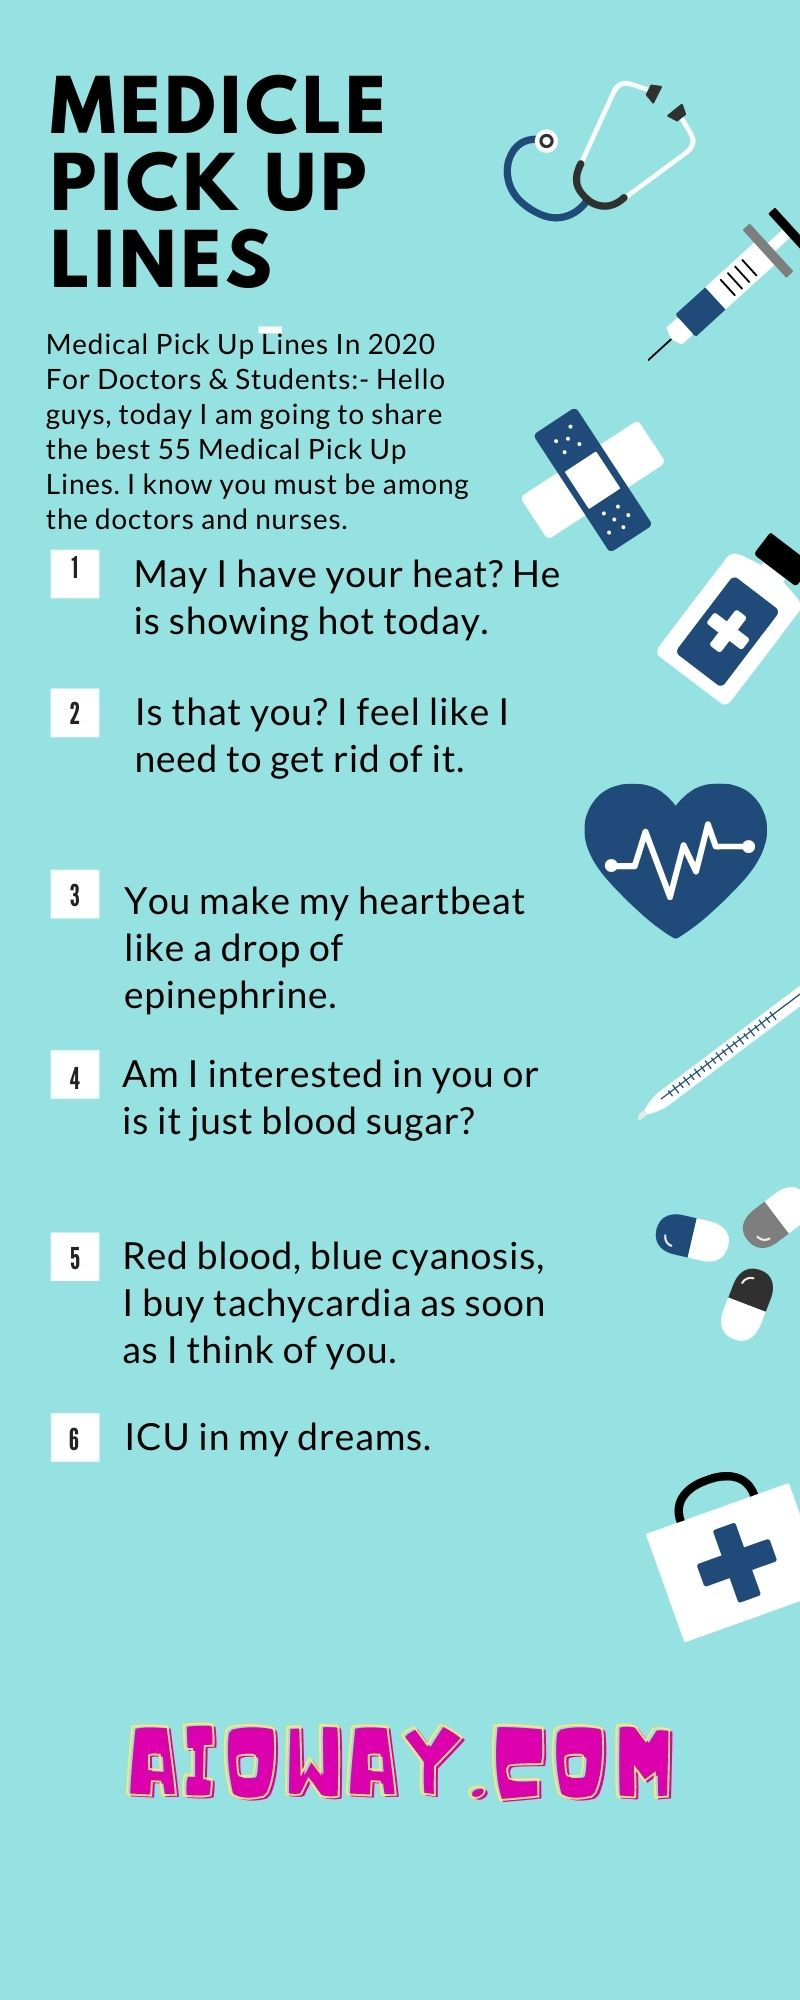 Medical Pick Up Lines For Doctors And Nurses | Latest Cheesy Puns